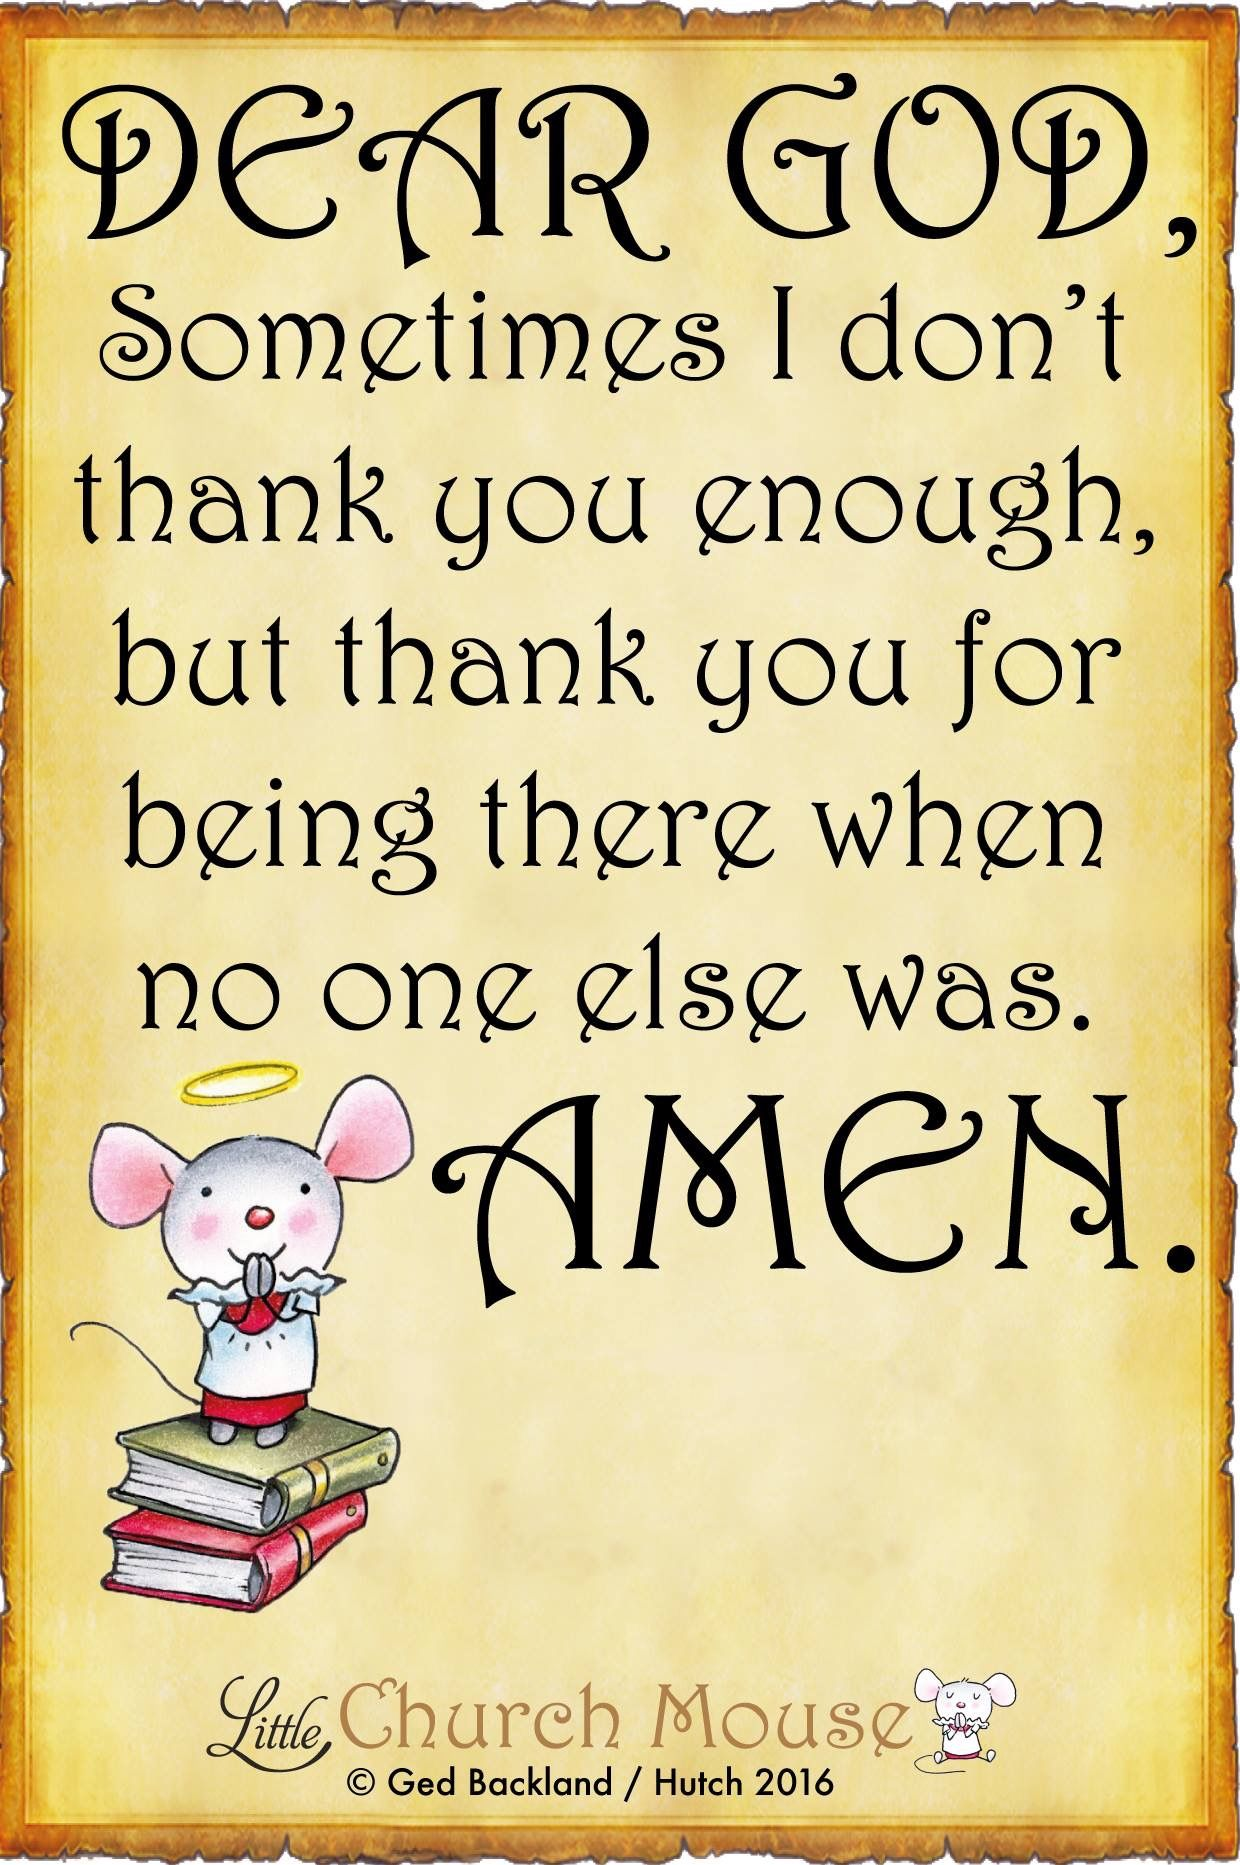 Christian Inspirational Quotes Life Dear God Sometimes I Don't Thank You Enough But Thank You For